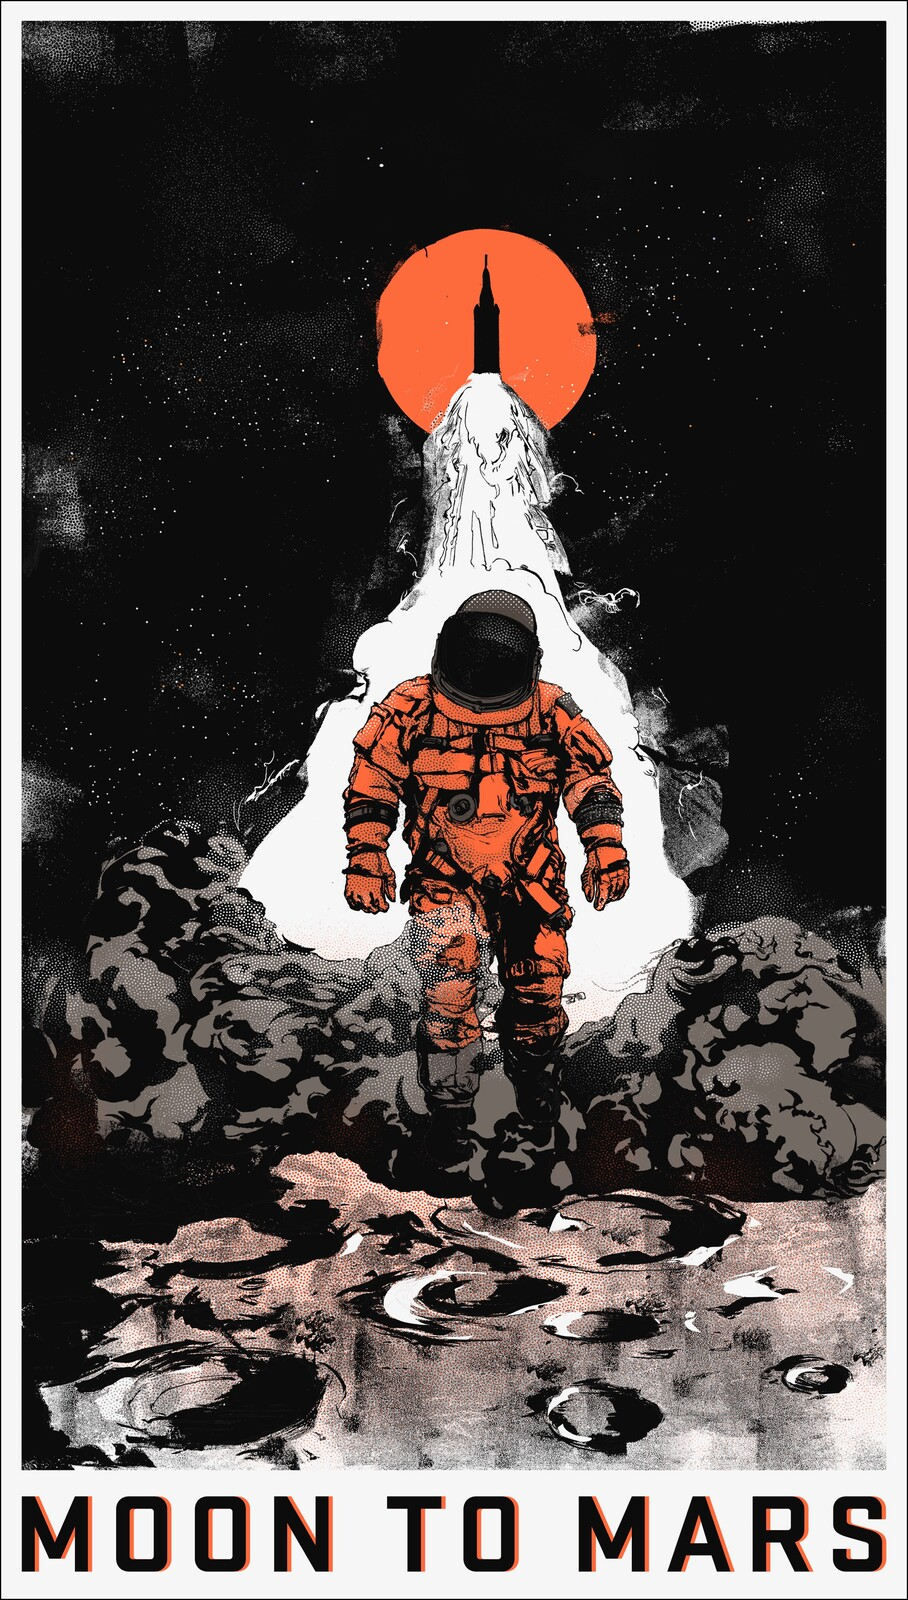 Moon to Mars: Full Poster